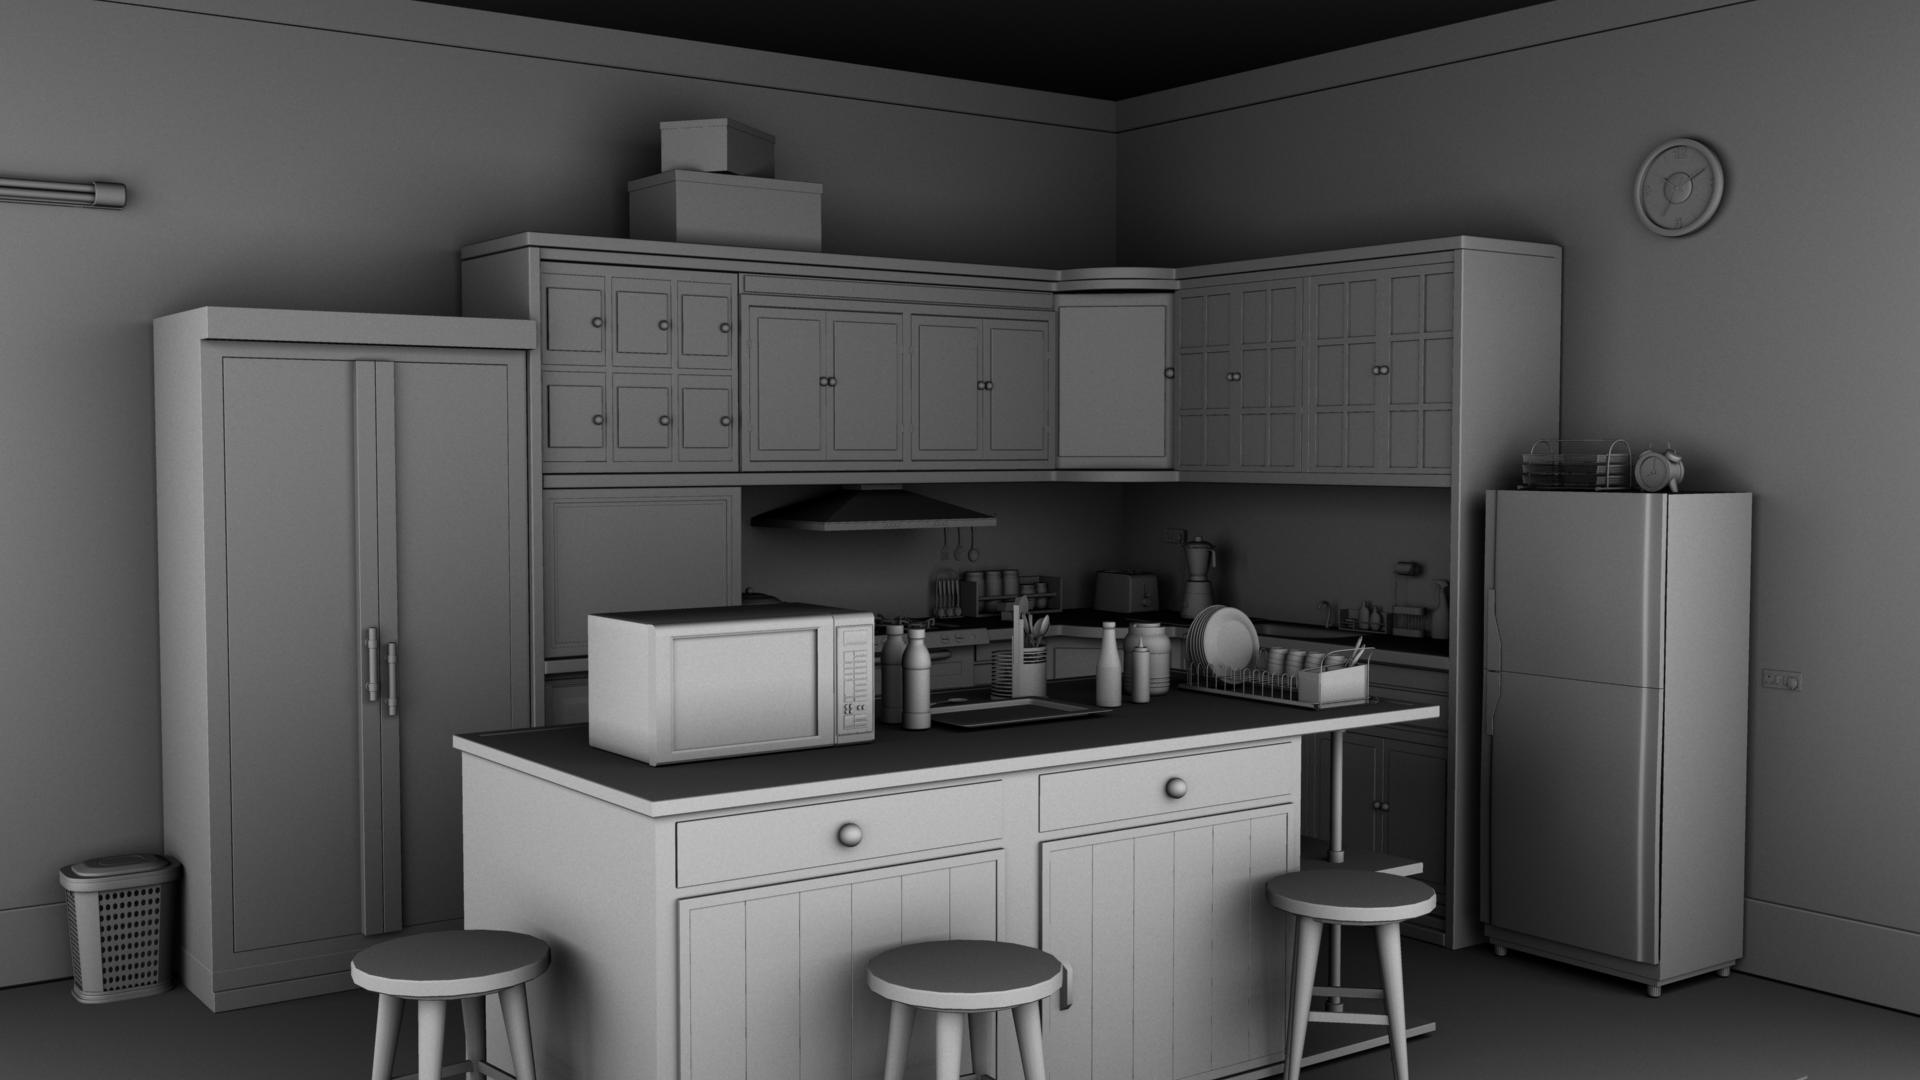 Kitchen 3D Model Kitchen 3D Model Architecture 3D Models Kitchen Ar Vr